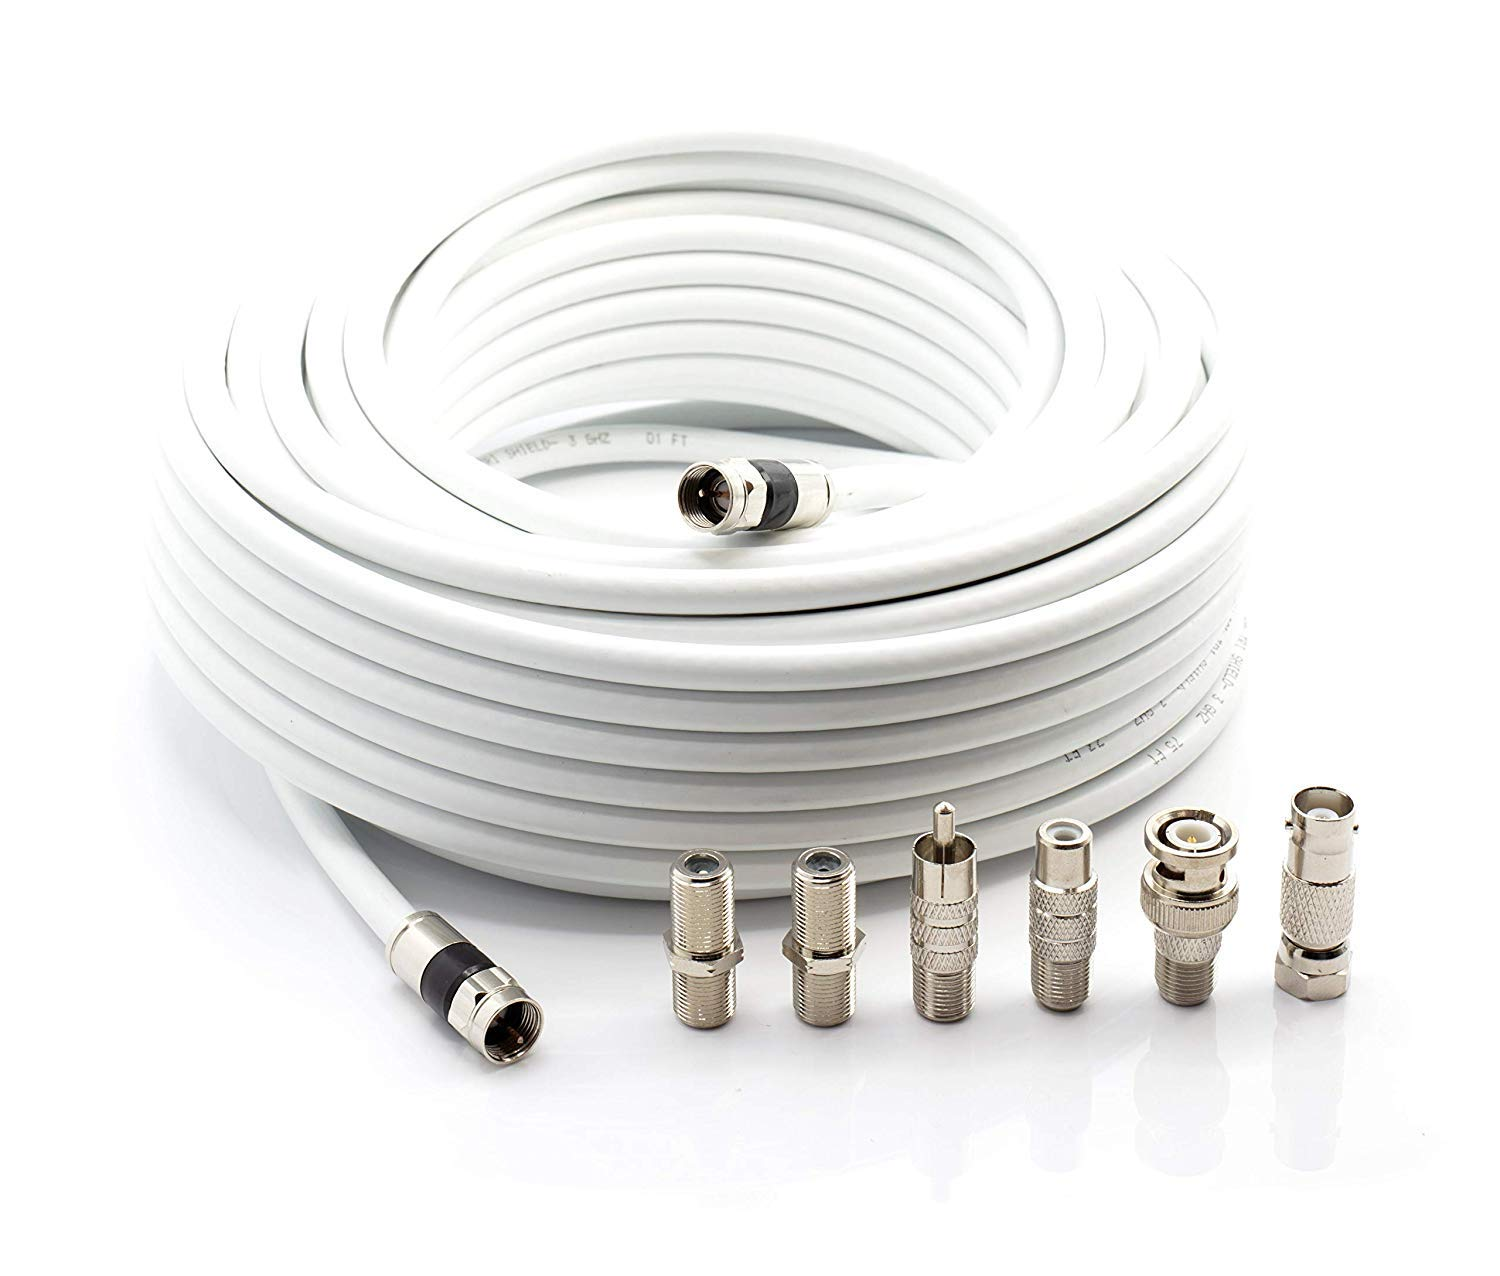 THE CIMPLE CO - Digital Coaxial Cable Kit with Universal Ends |RG6 Coax Cable and six (6) Piece Adapter Kit Includes Male Female RCA BNC F81, ...